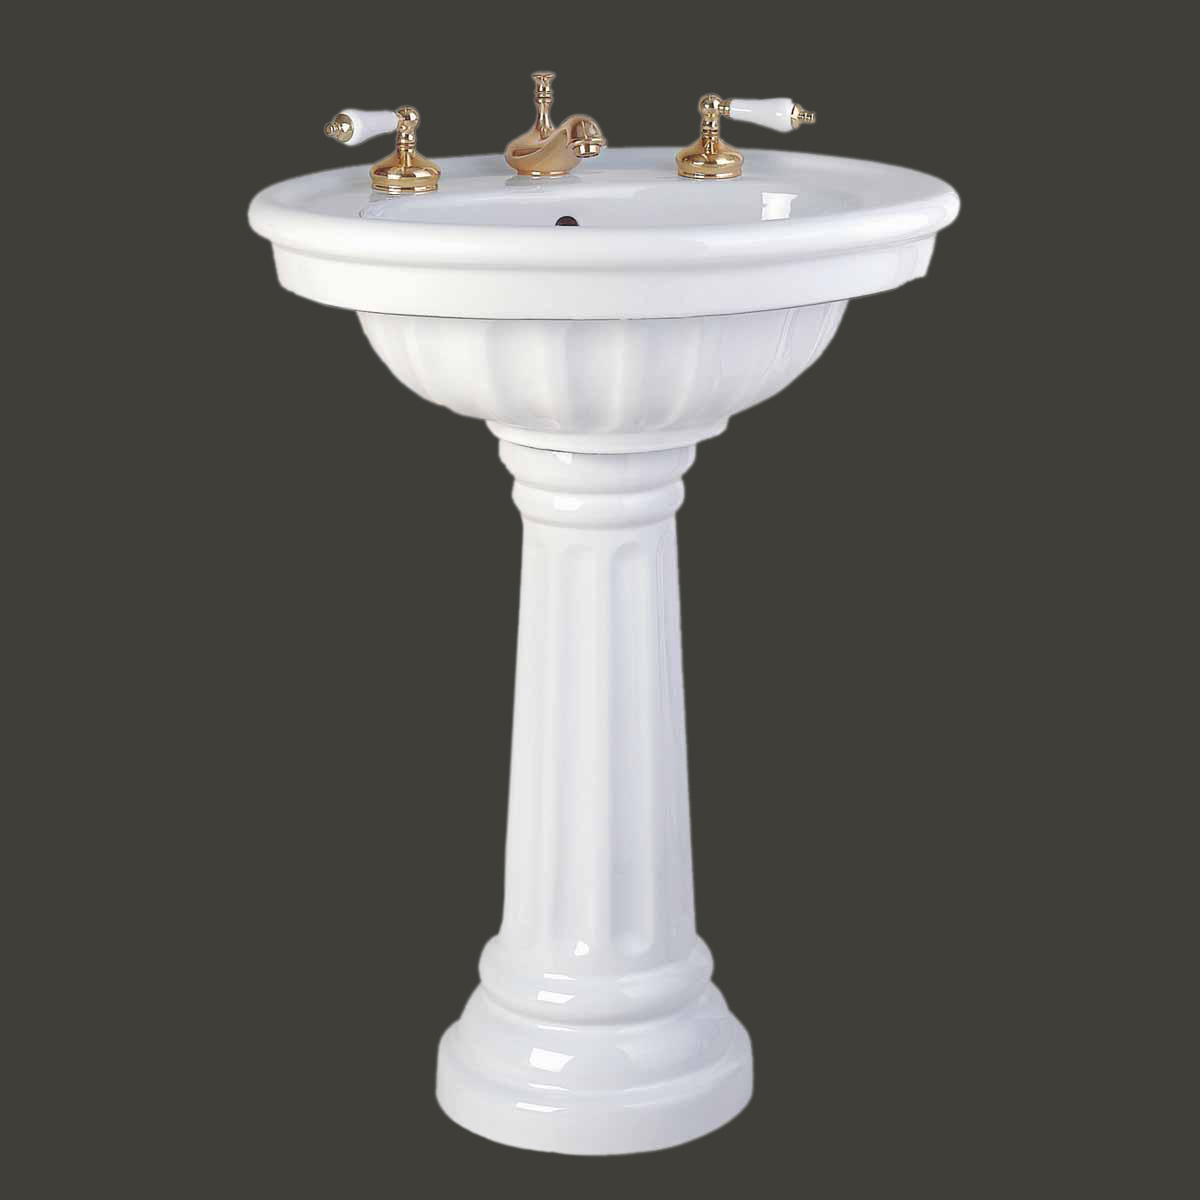 Bathroom Sink With Pedestal : Home Plumbing Pedestal Sinks Medium Pedestal Sinks